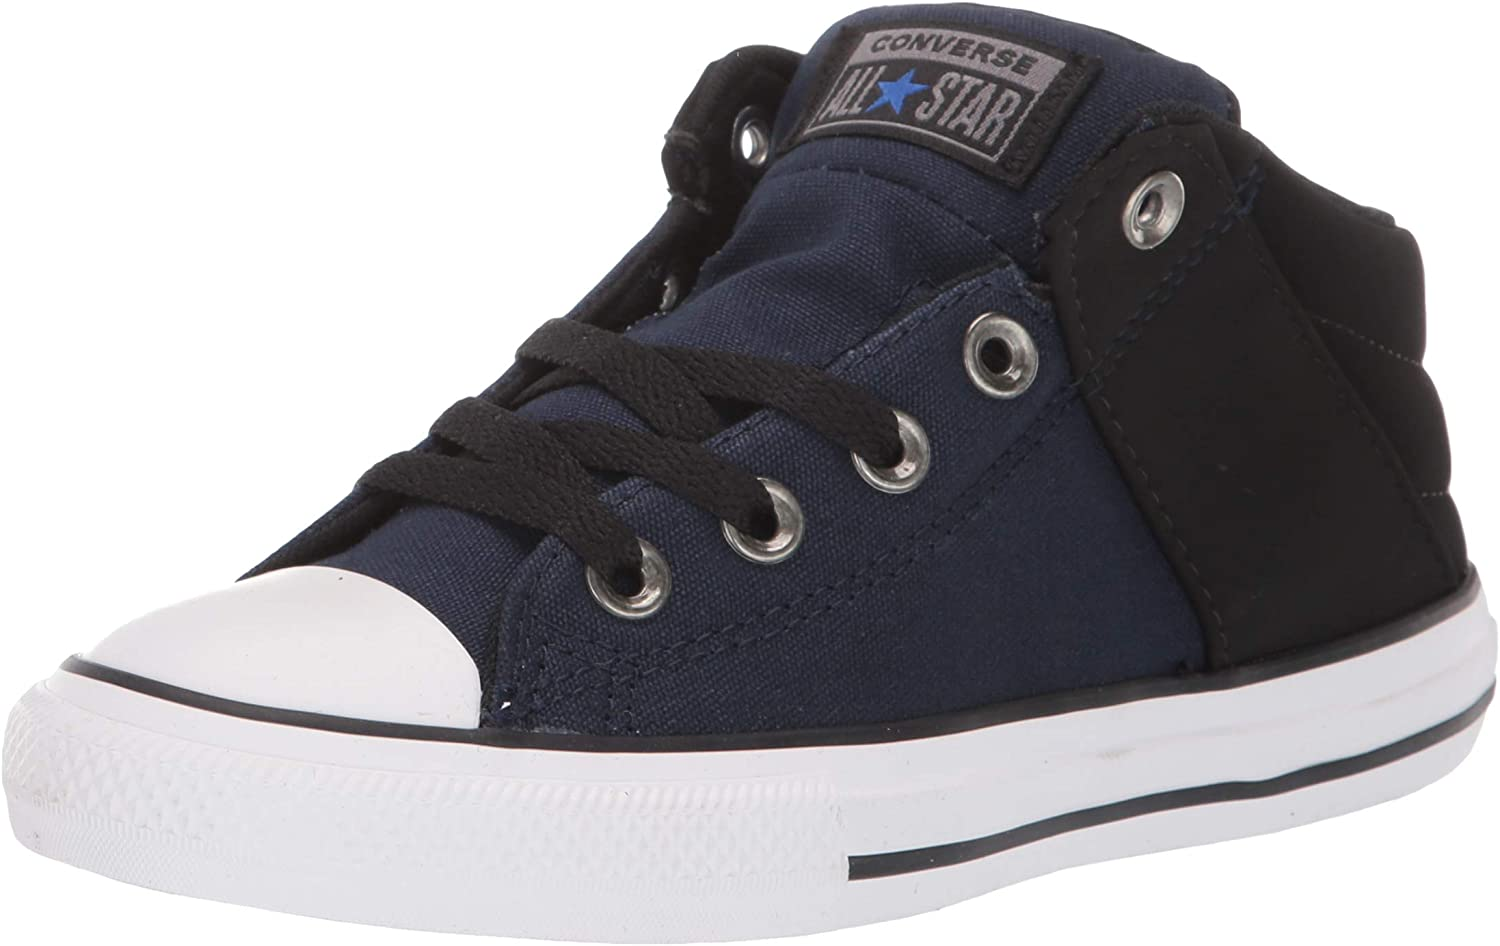 Converse Unisex-Child Chuck Taylor All Star Axel Mid Top Sneaker